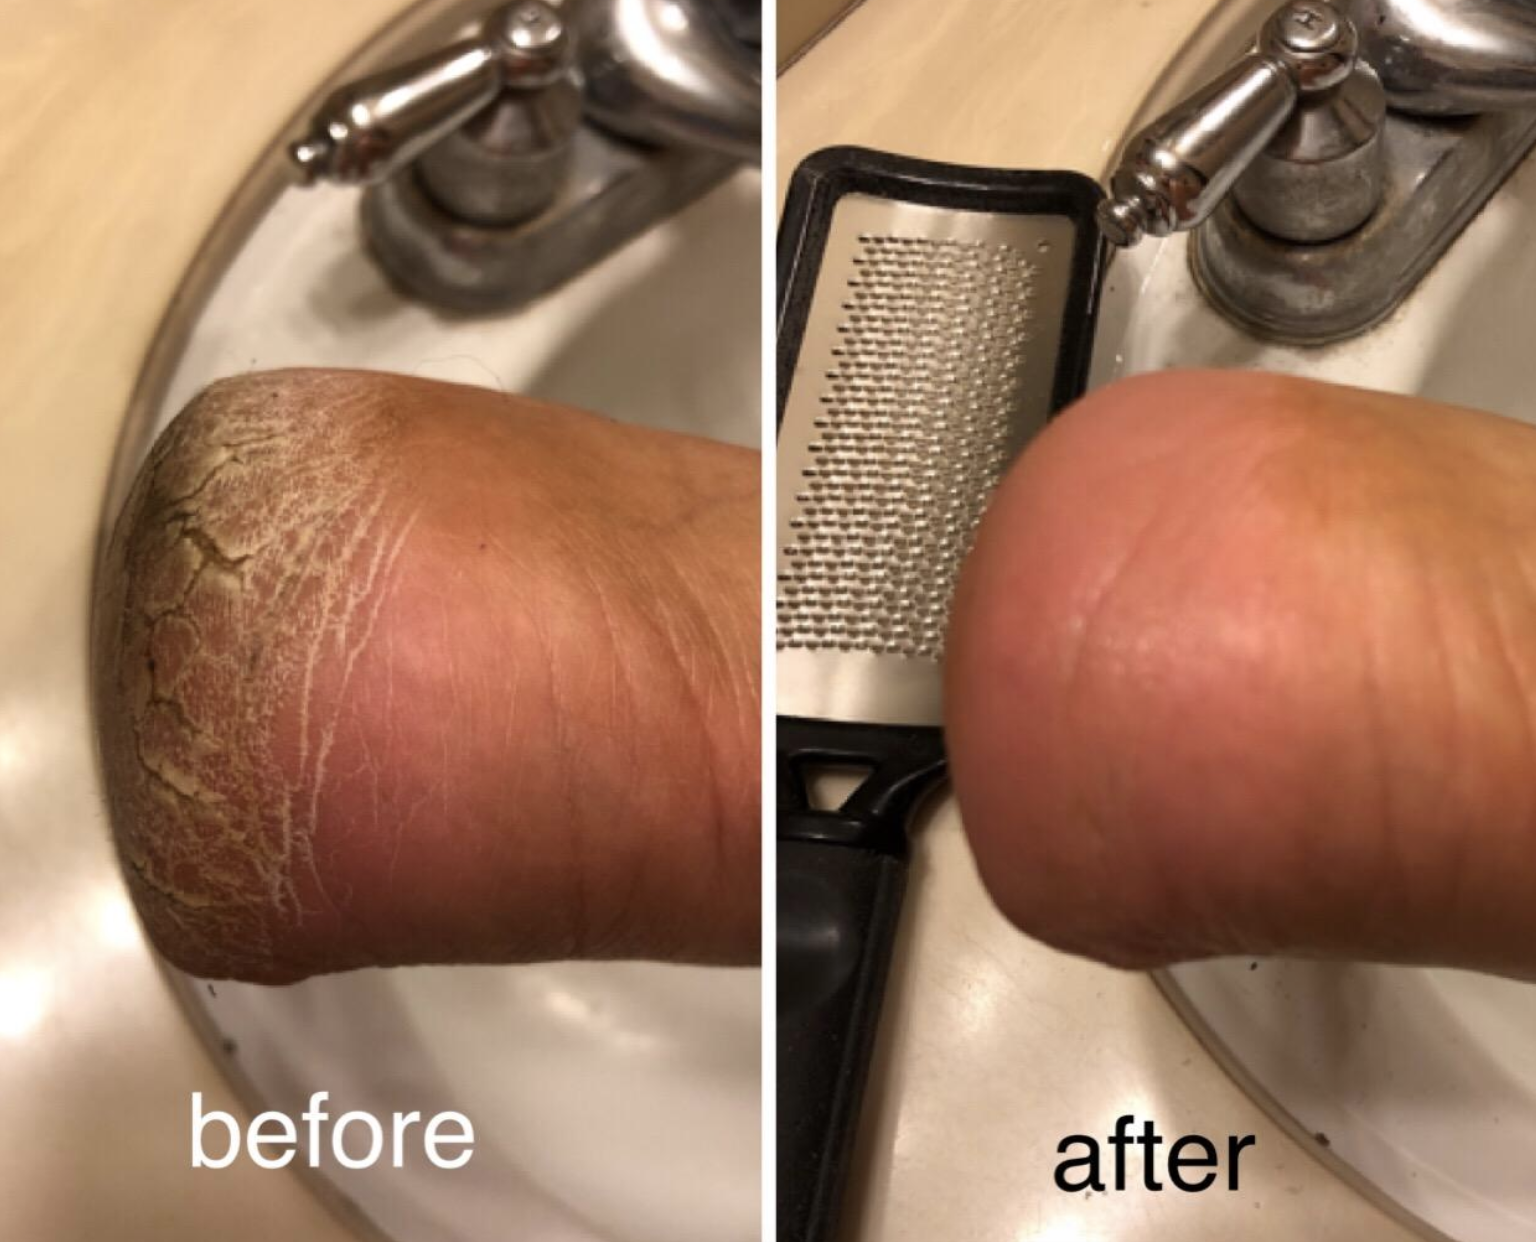 Before and after pic of a reviewers heels. The before has cracked dry feet and the after photo shows smooth, crack-free skin.